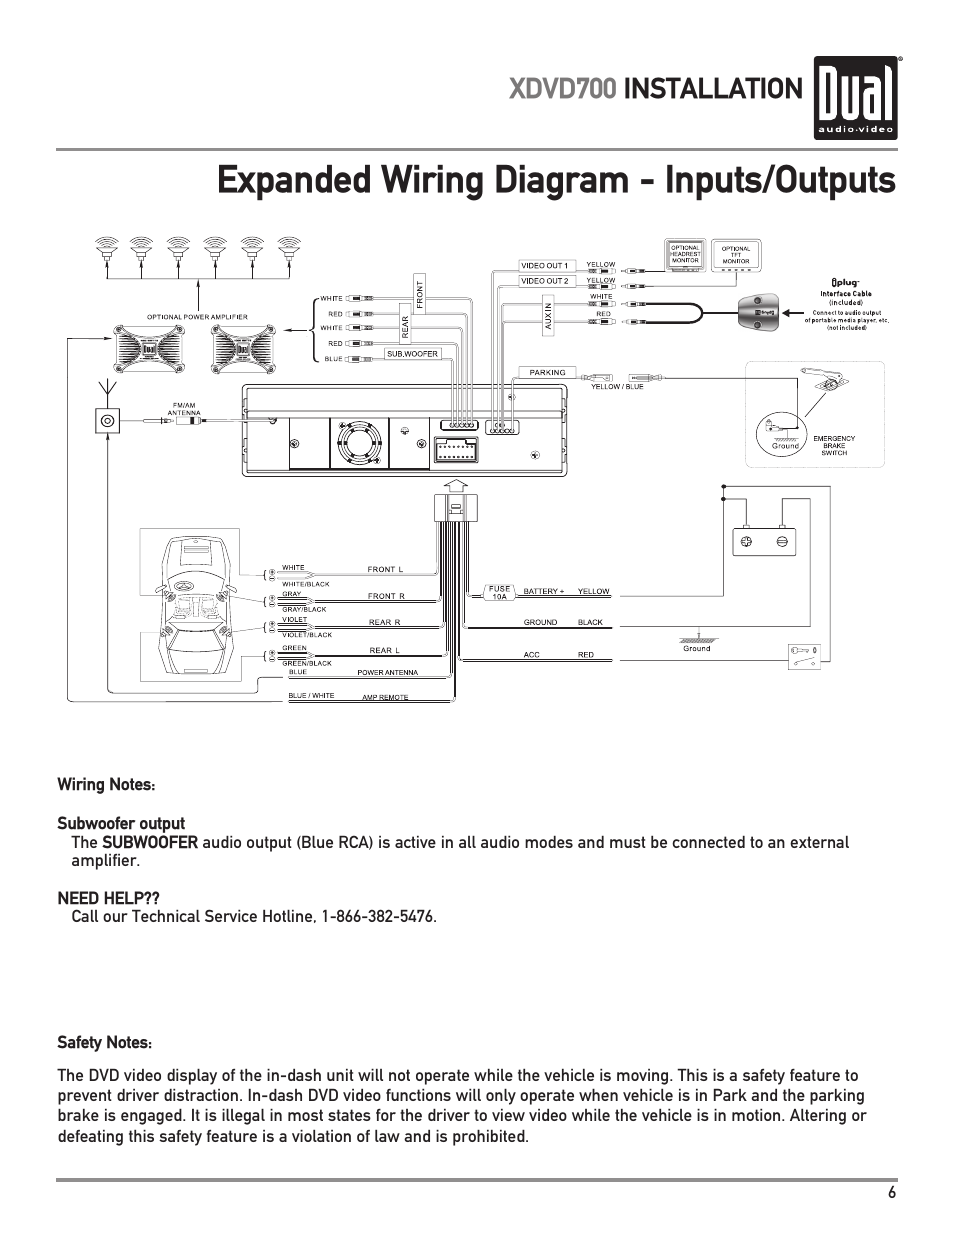 dual xdvd700 page7 expanded wiring diagram inputs outputs, xdvd700 installation dual xdvd700 wire harness diagram at soozxer.org